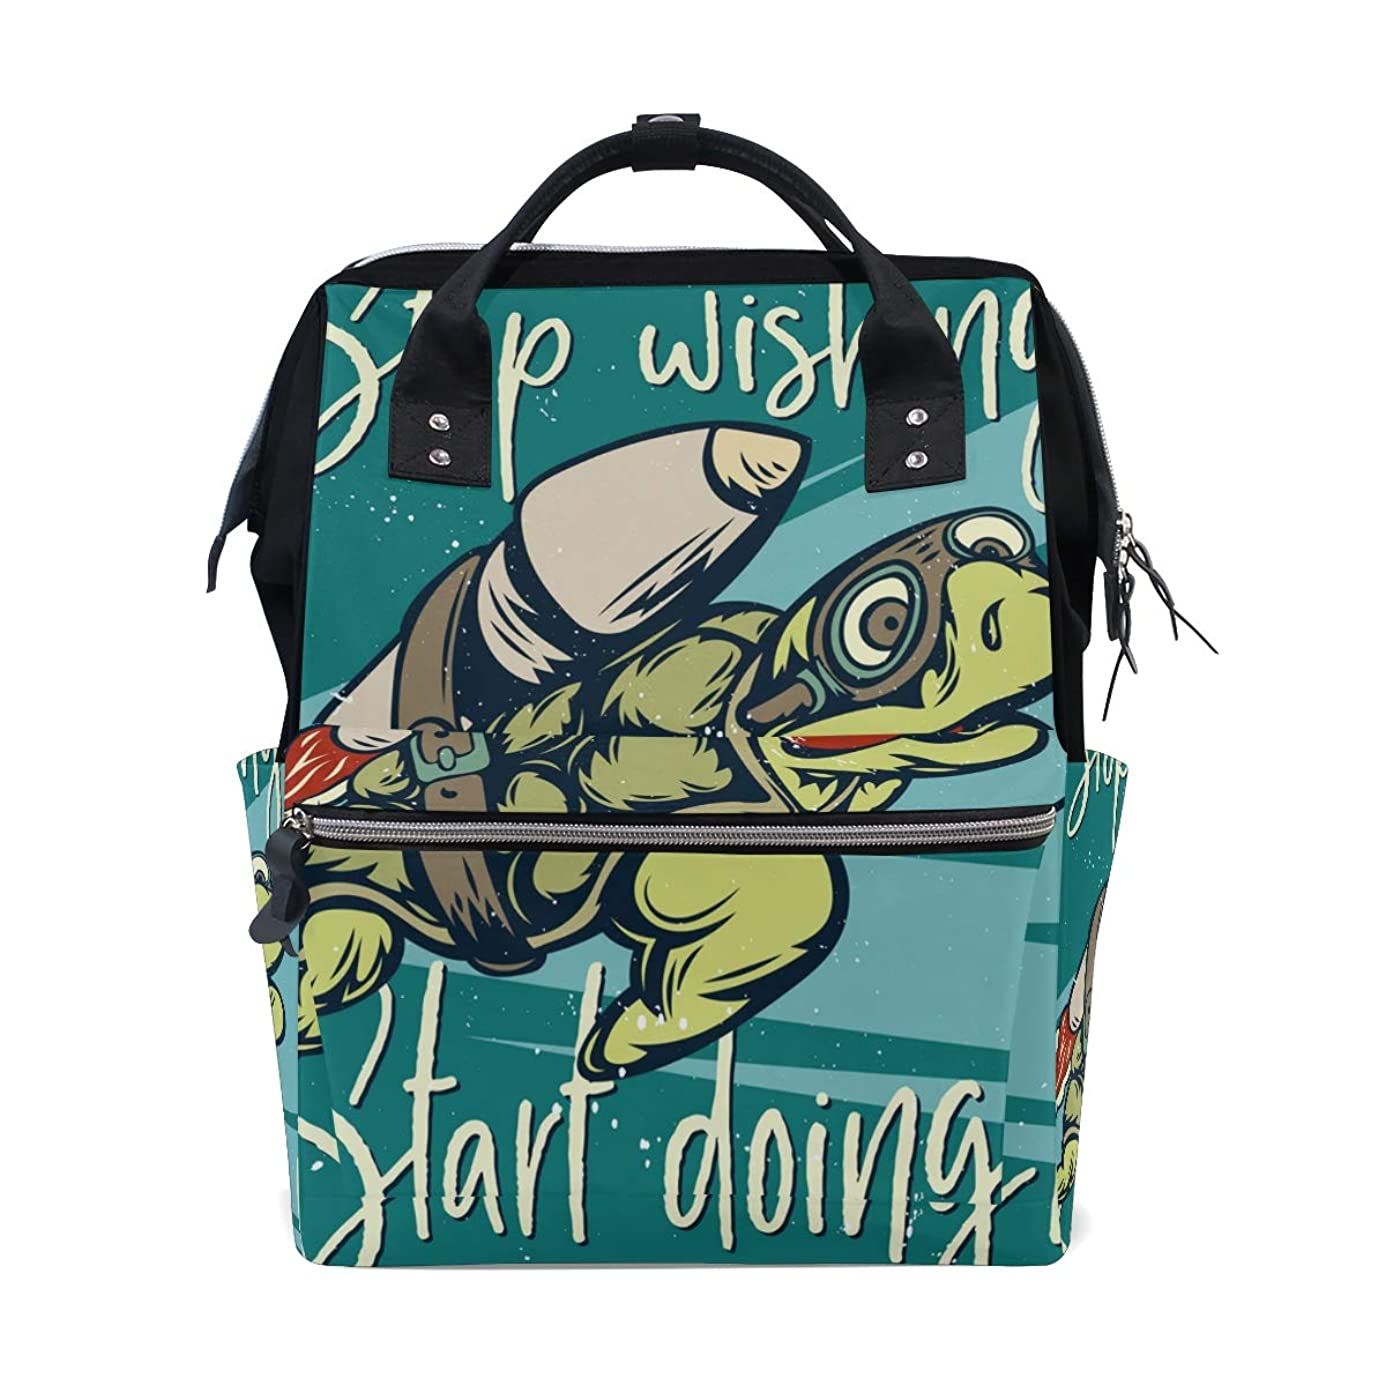 Cool Sea Turtle Rocket School Backpack Large Capacity Mummy Bags Laptop Handbag Casual Travel Rucksack Satchel For Women Men Adult Teen Children dzu2039374